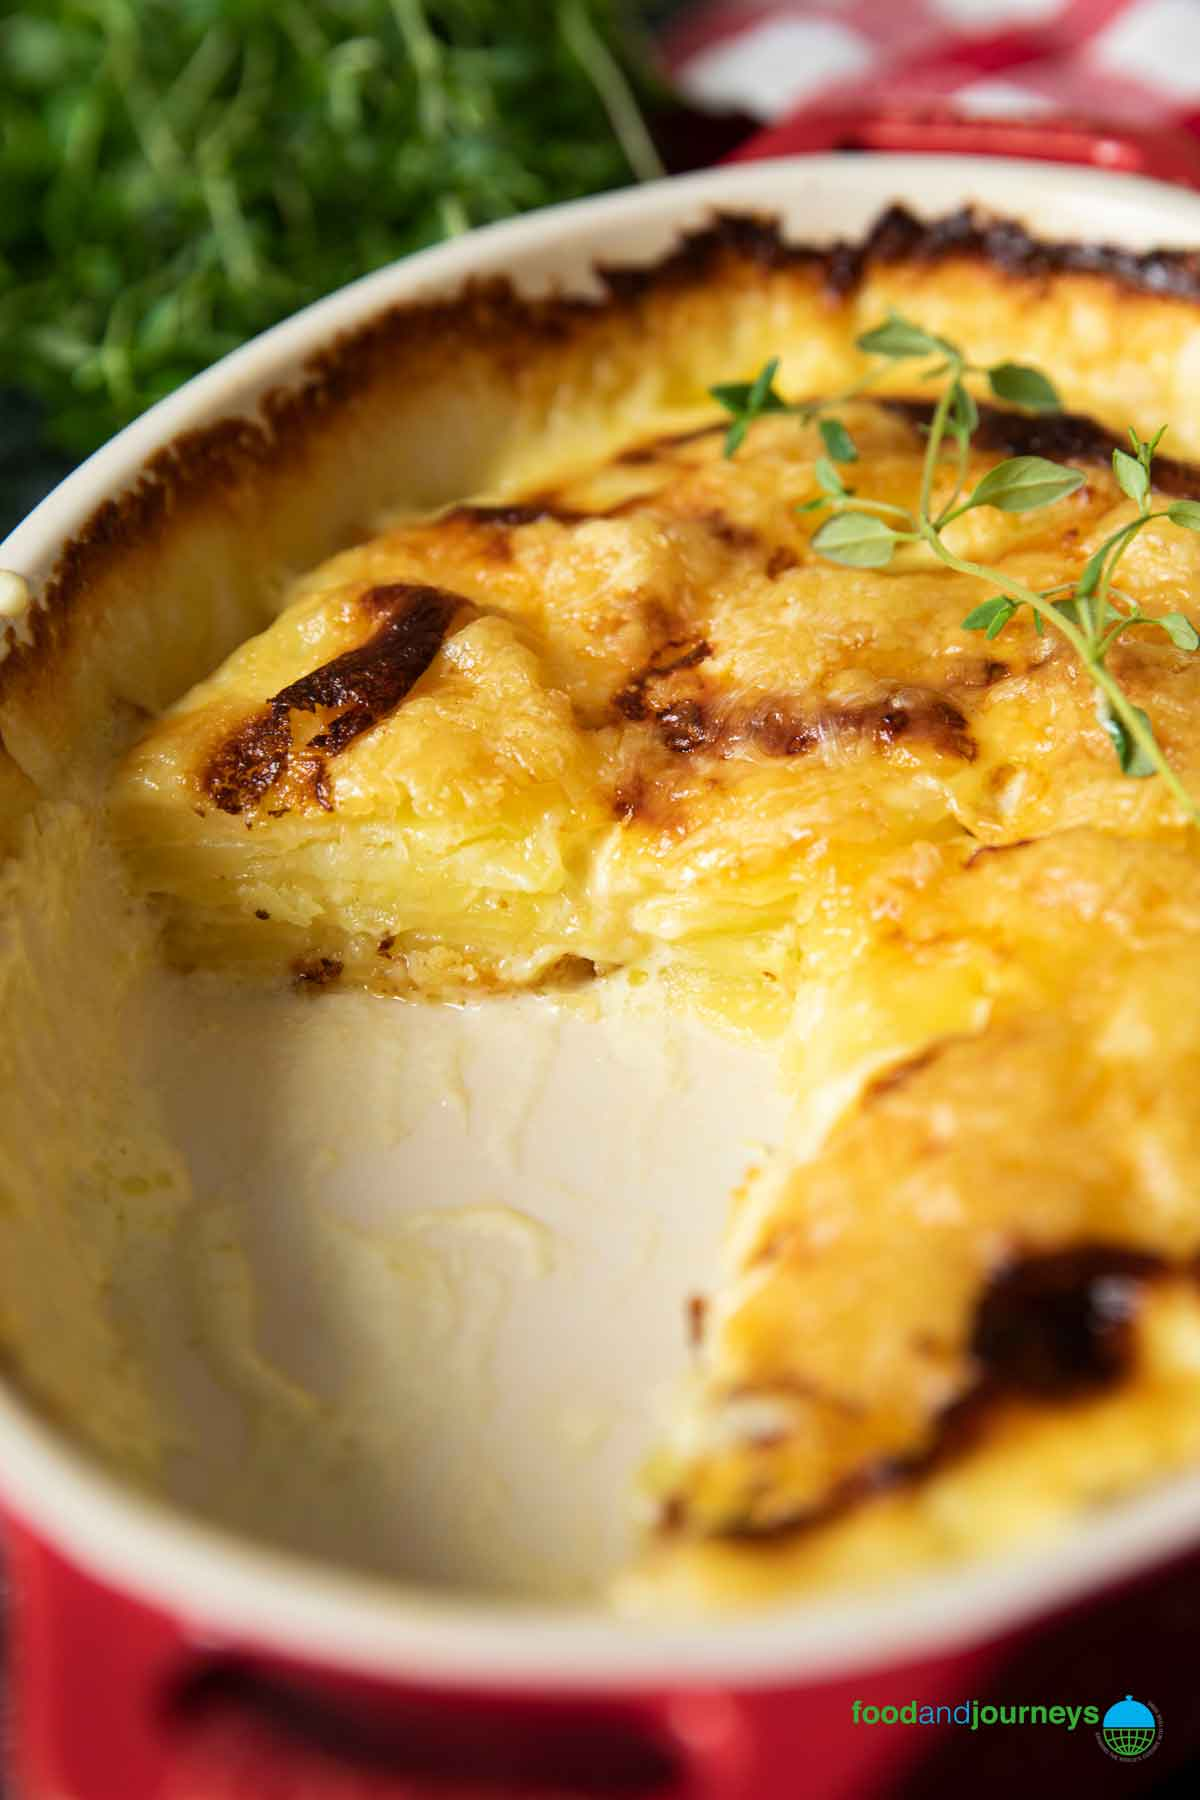 A closer shot of the layers of the gratin, showing the cooked potatoes, and not drowning in cream.